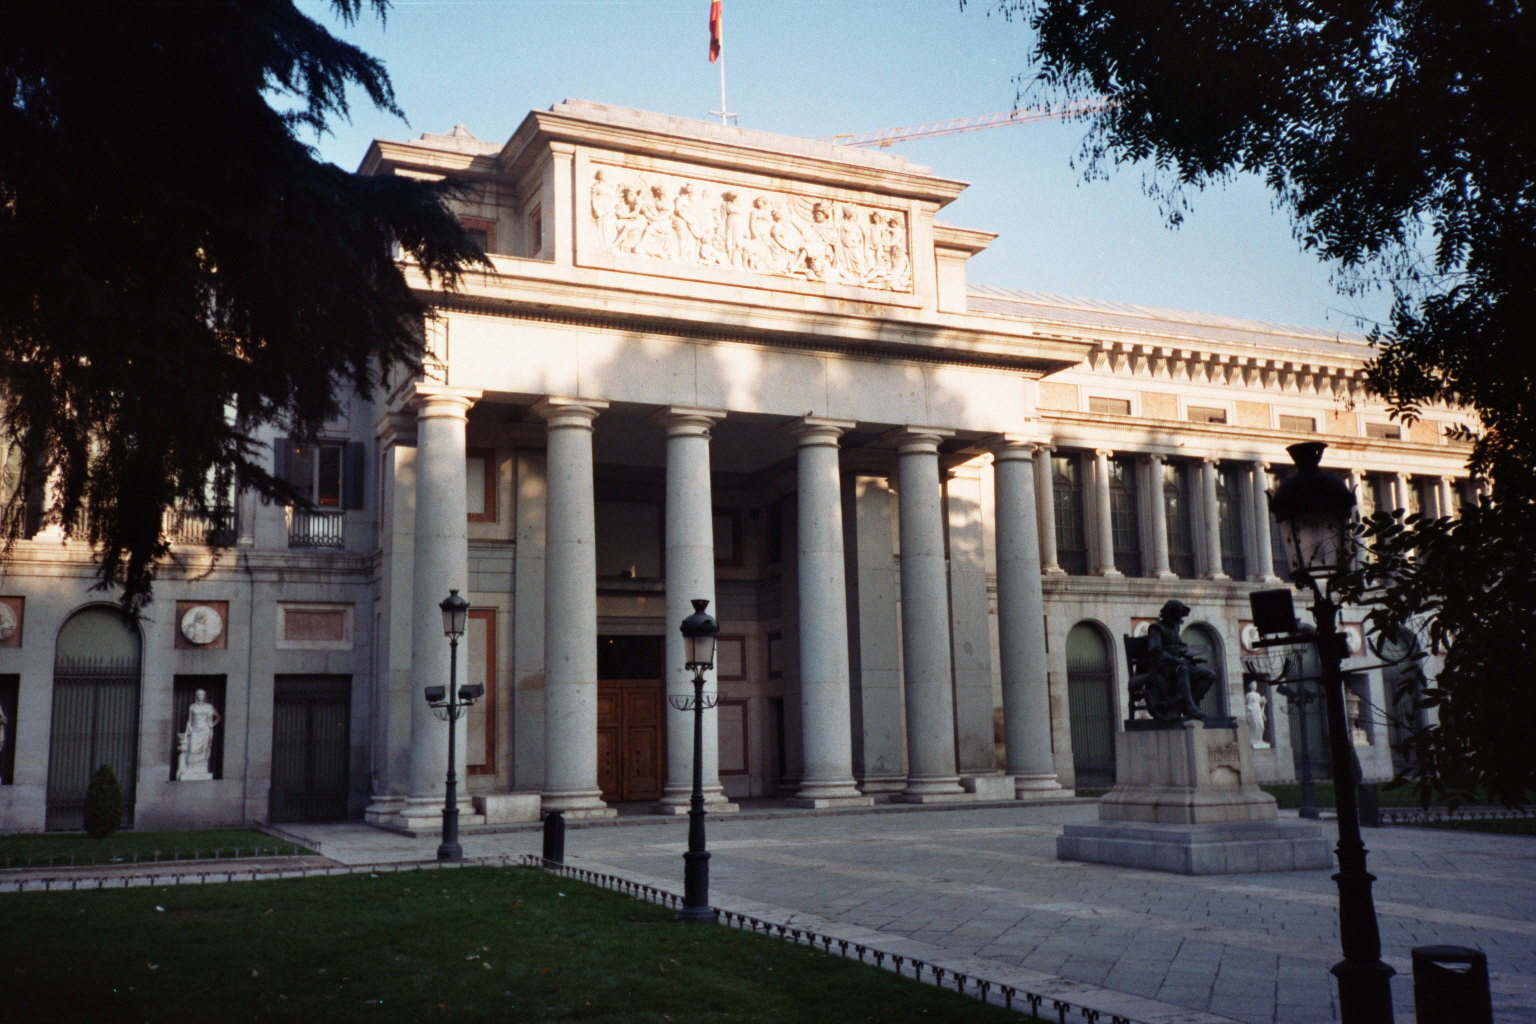 File:Prado Museum, Madrid.jpg - Wikipedia